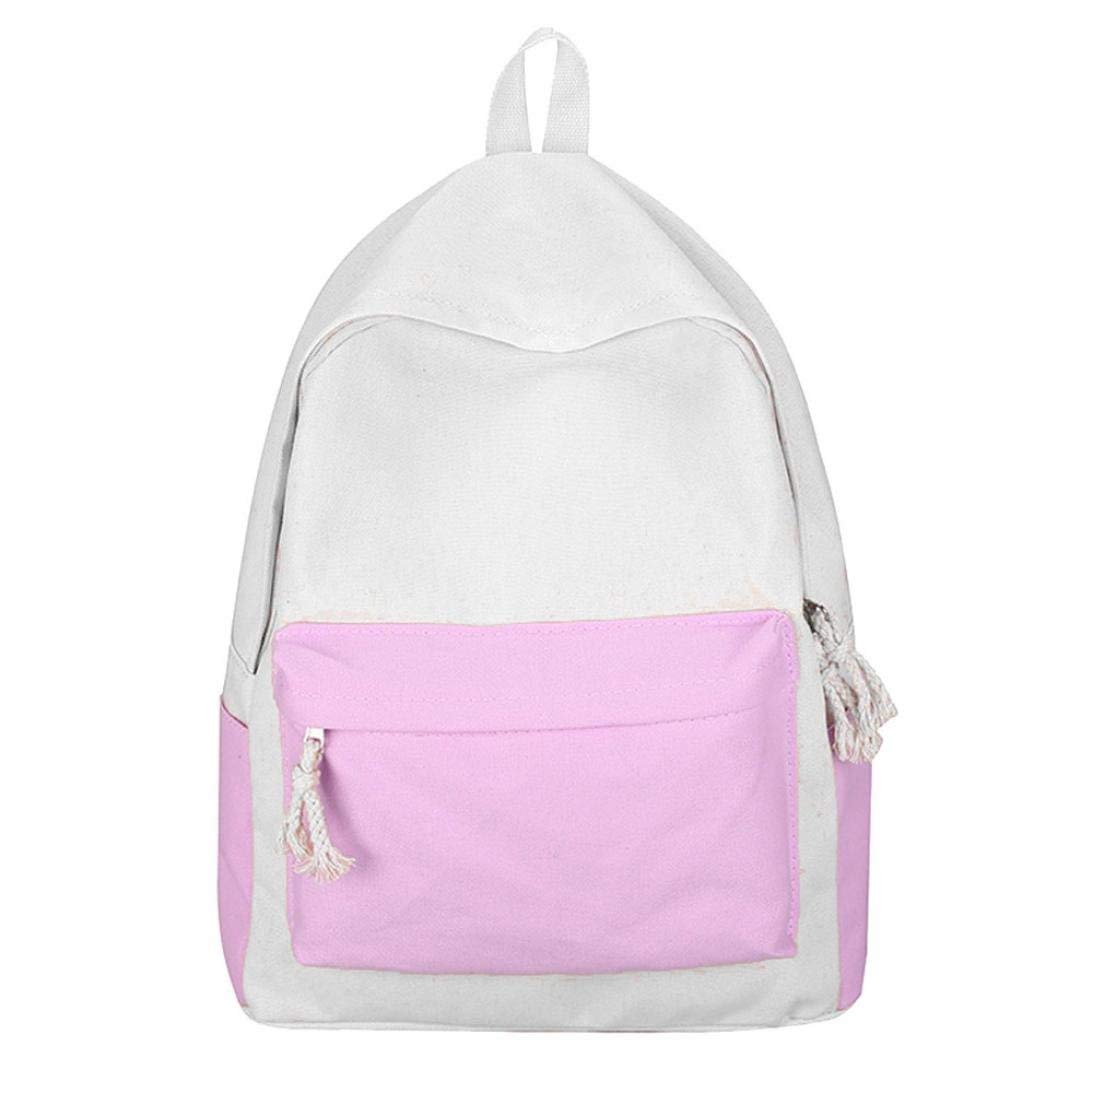 4a0e6ff110 Get Quotations · Hmlai Canvas Backpack